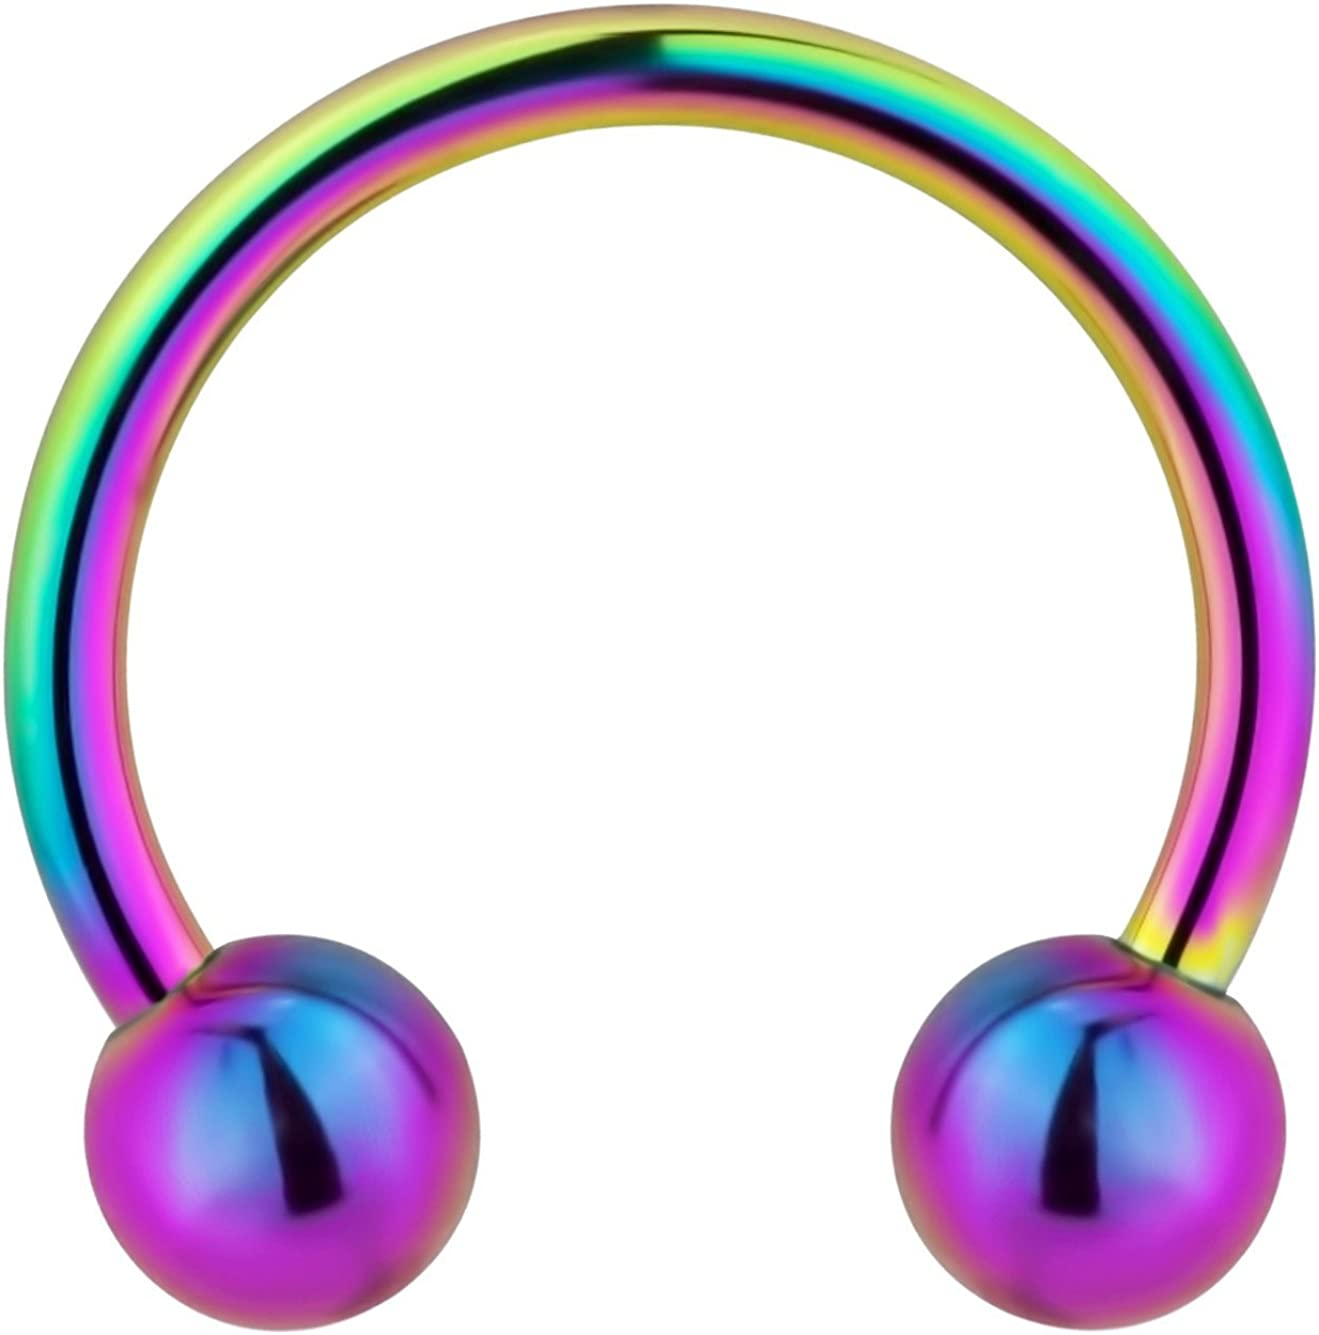 Forbidden Body Jewelry 14g 12mm Surgical Steel Rainbow IP Plated Horseshoe Ball Ring, 5mm Balls